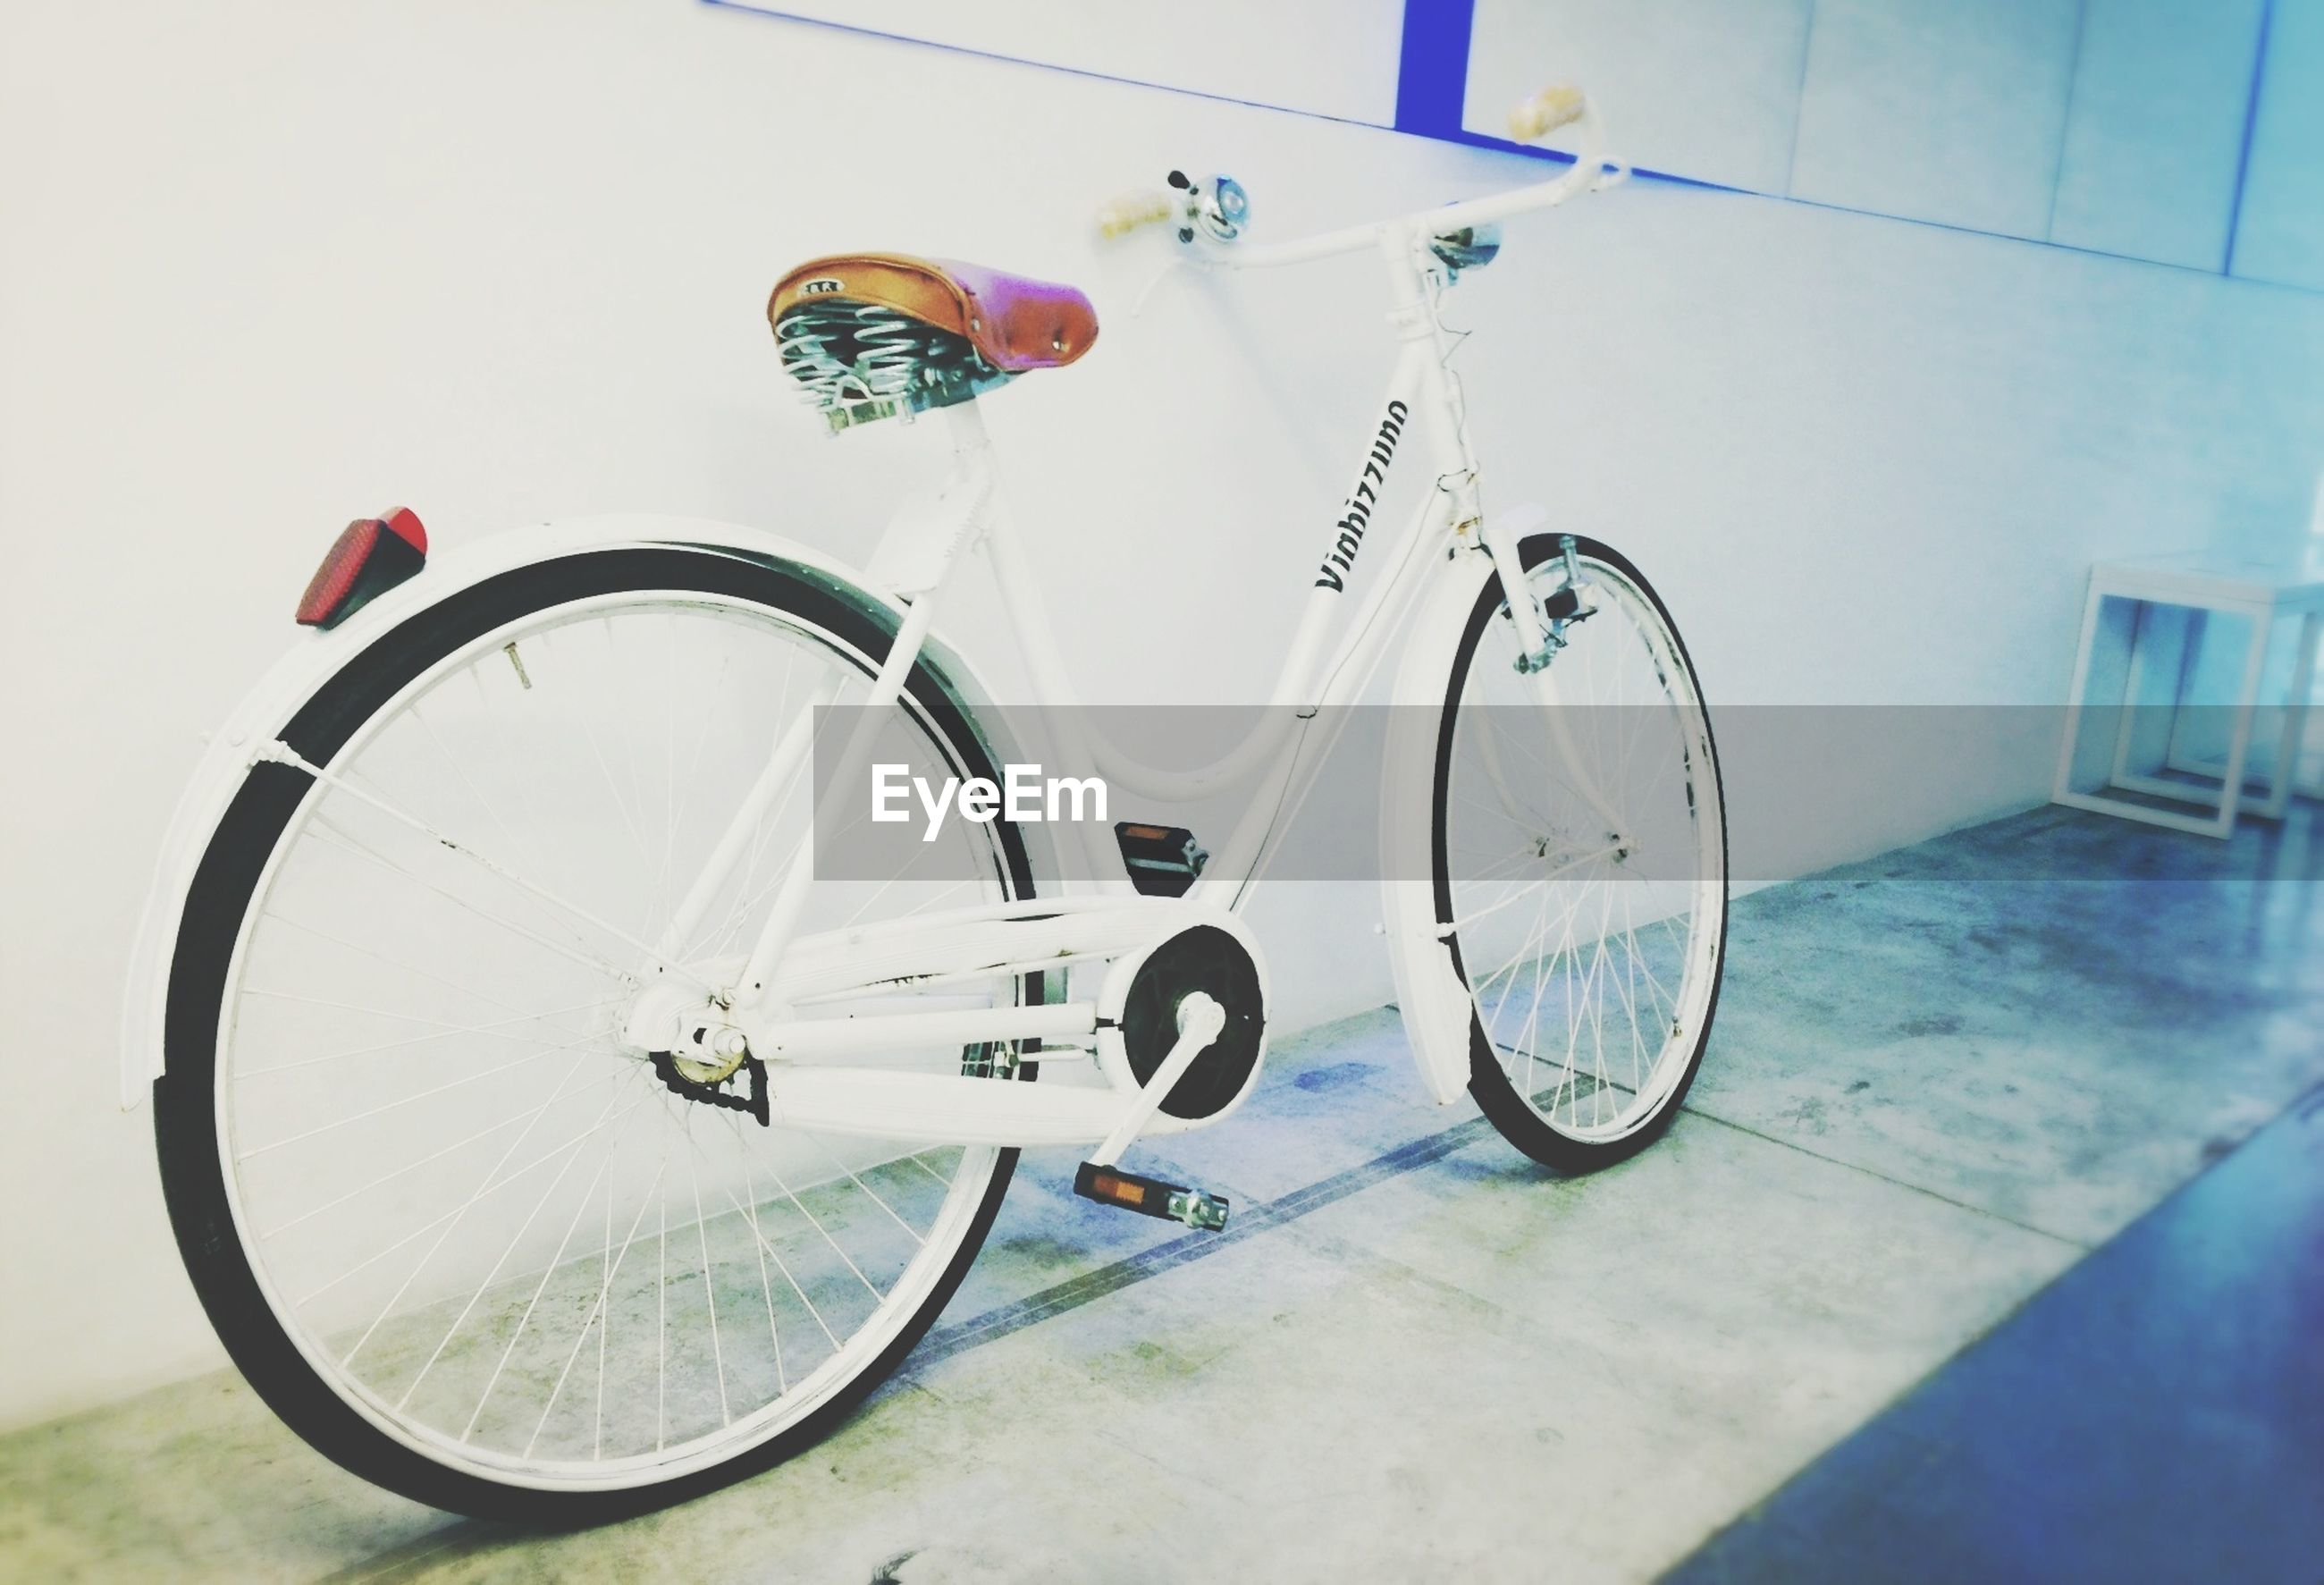 bicycle, transportation, stationary, land vehicle, mode of transport, parked, parking, built structure, wall - building feature, day, architecture, no people, street, sunlight, building exterior, outdoors, blue, hanging, wheel, absence